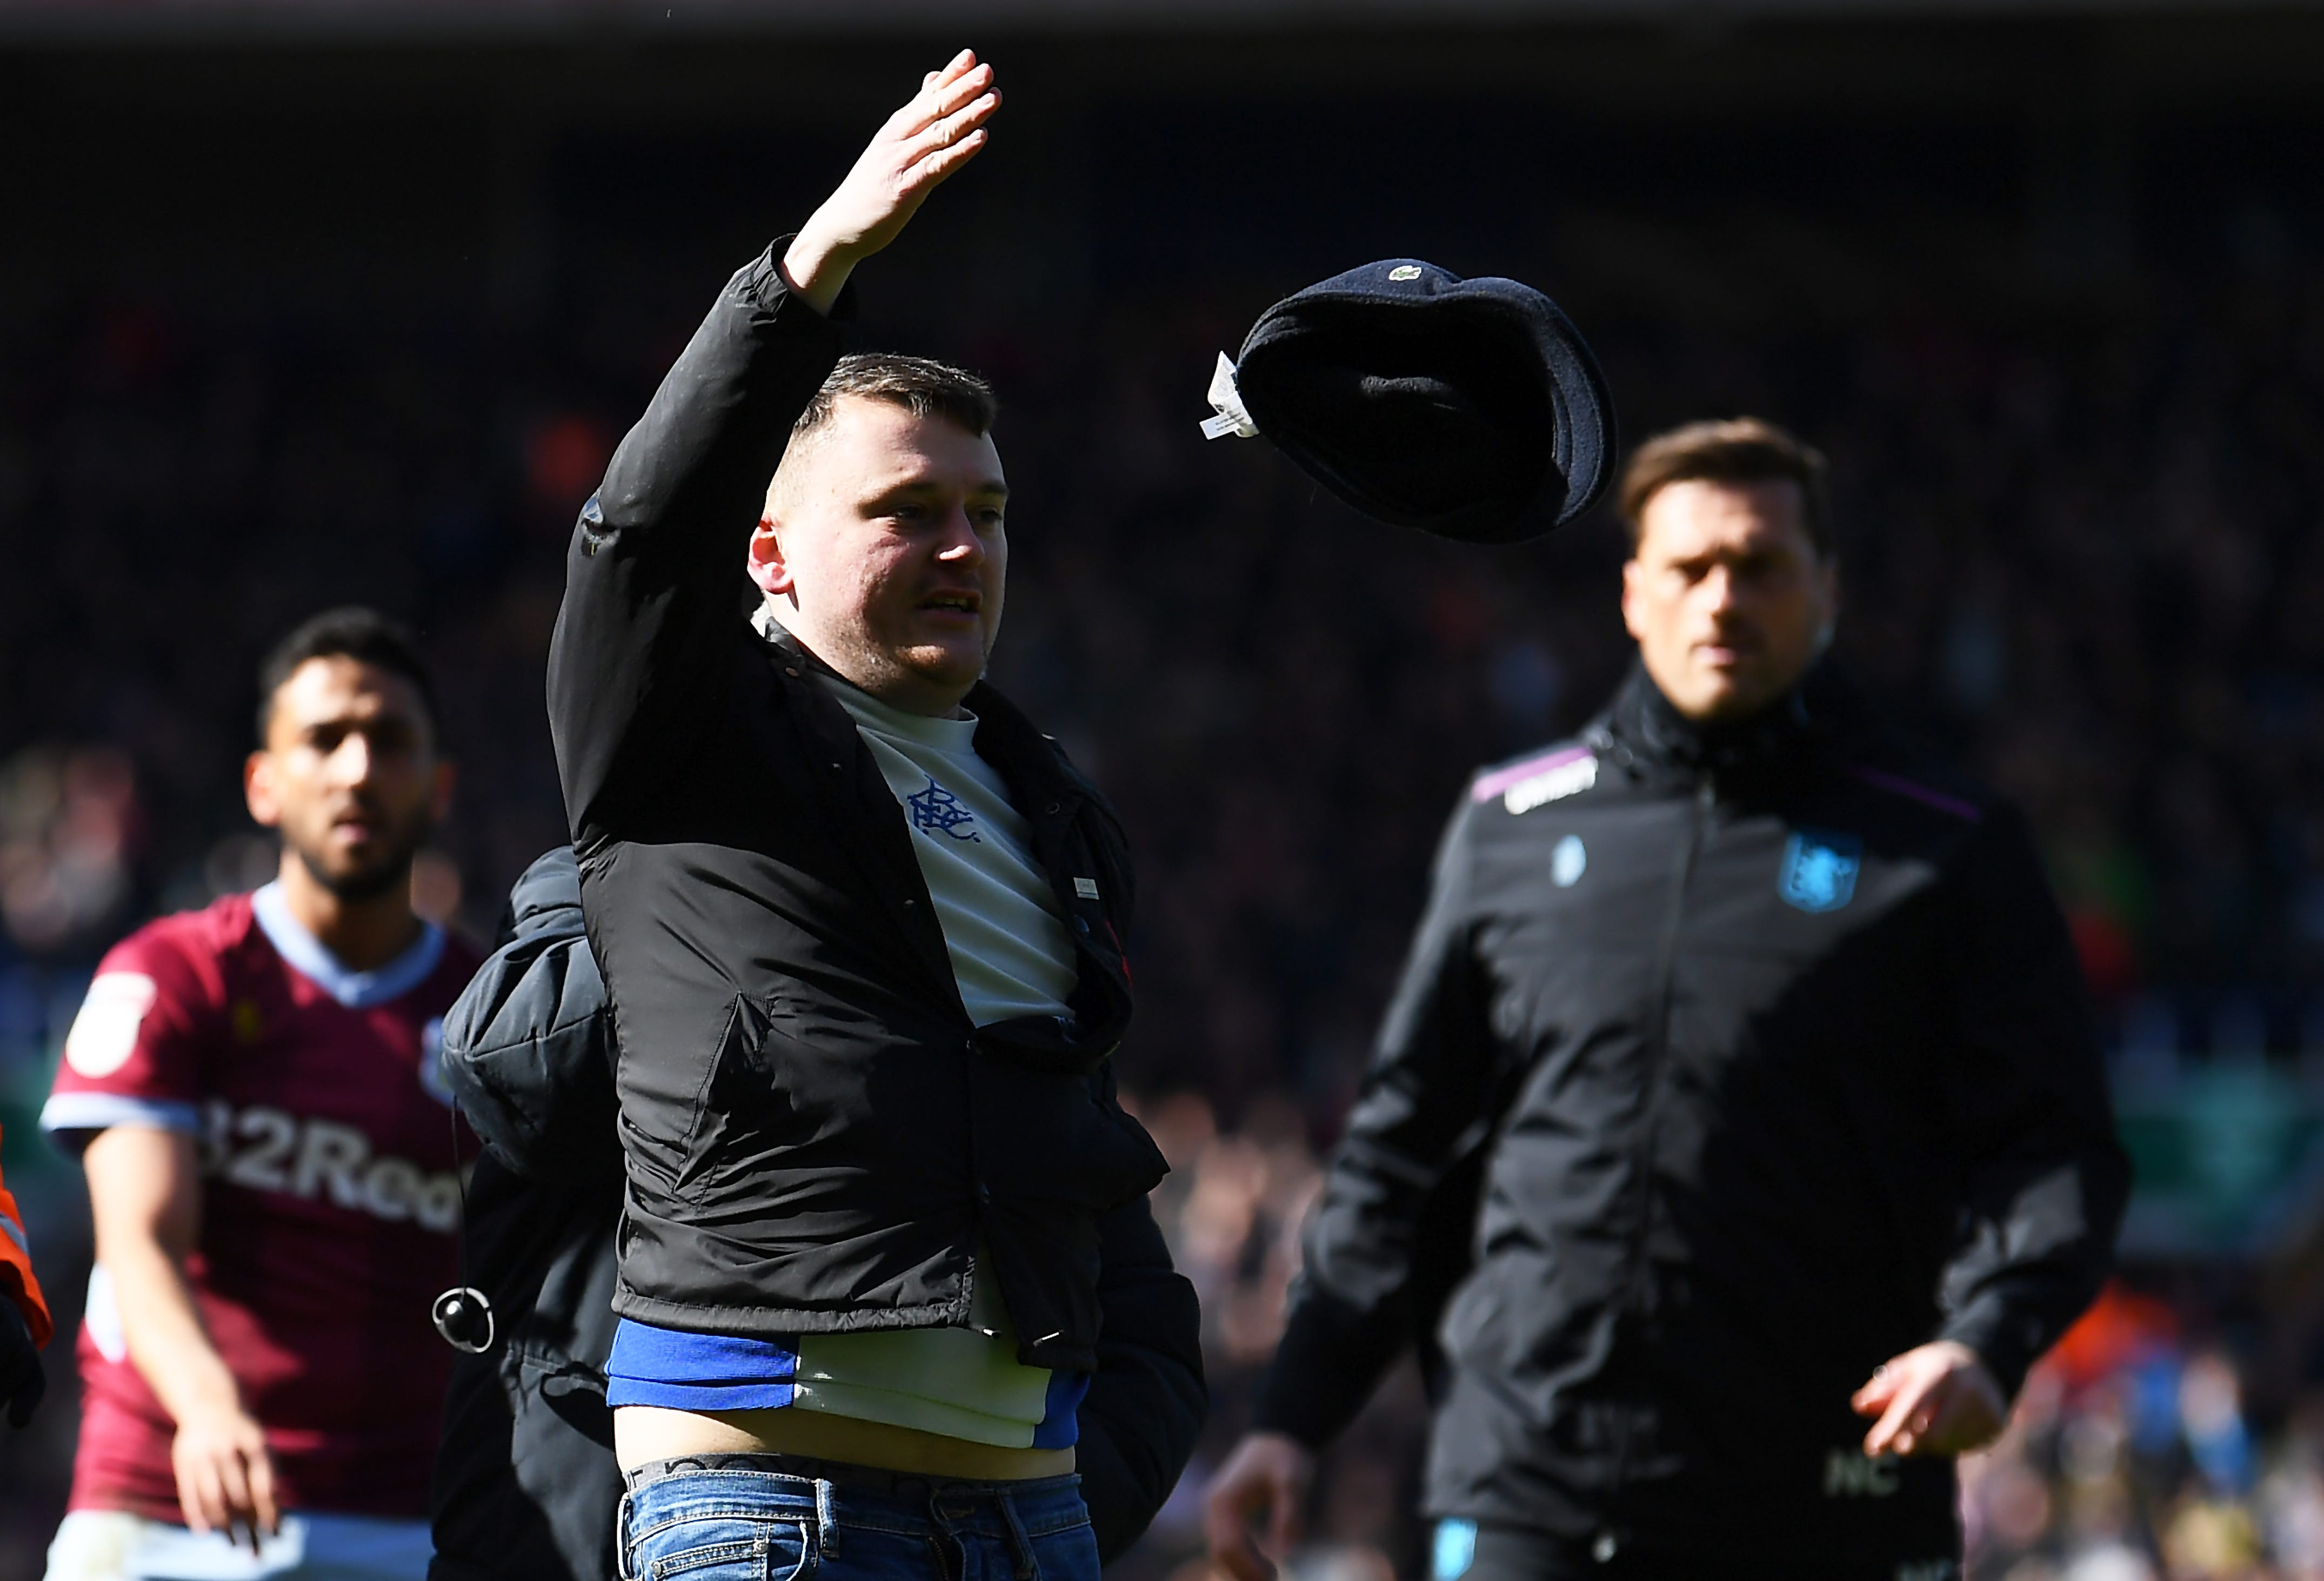 Soccer fan sentenced to 14 weeks in jail for punching Aston Villa's Jack Grealish in game